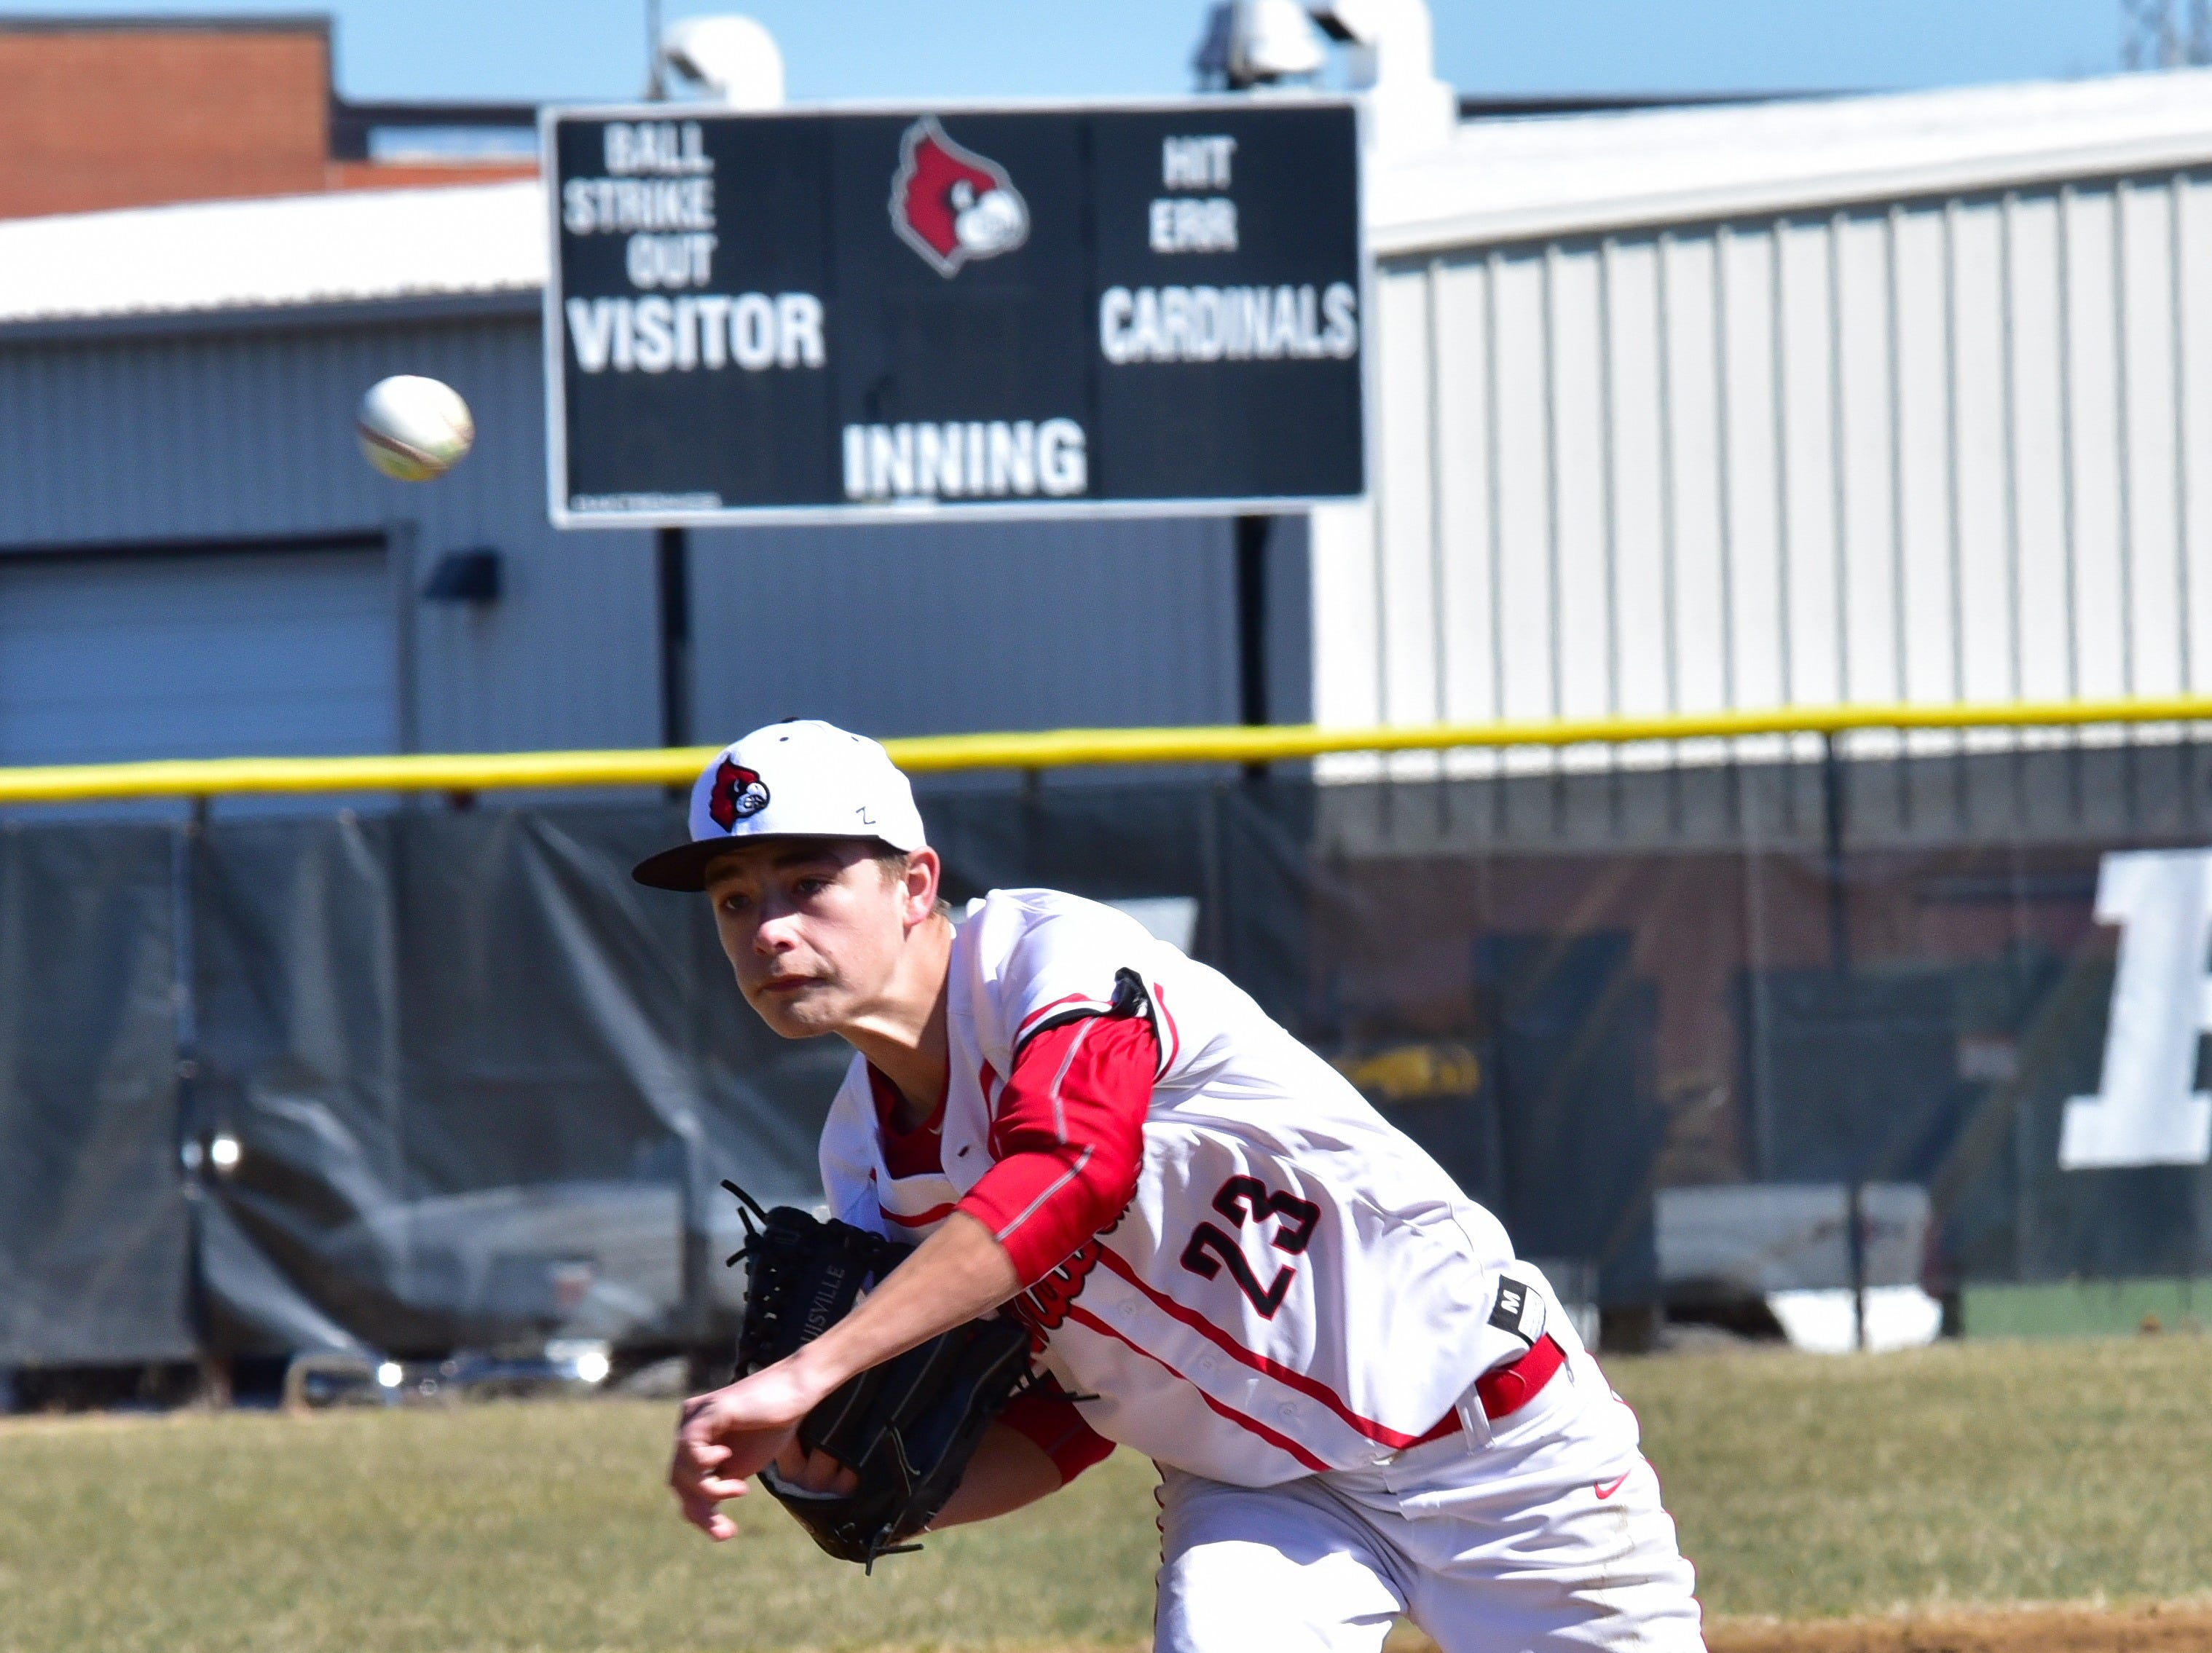 Dylan Gervers was on the bump for Colerain on opening day of high school baseball at Colerain High School, March 23, 2019.